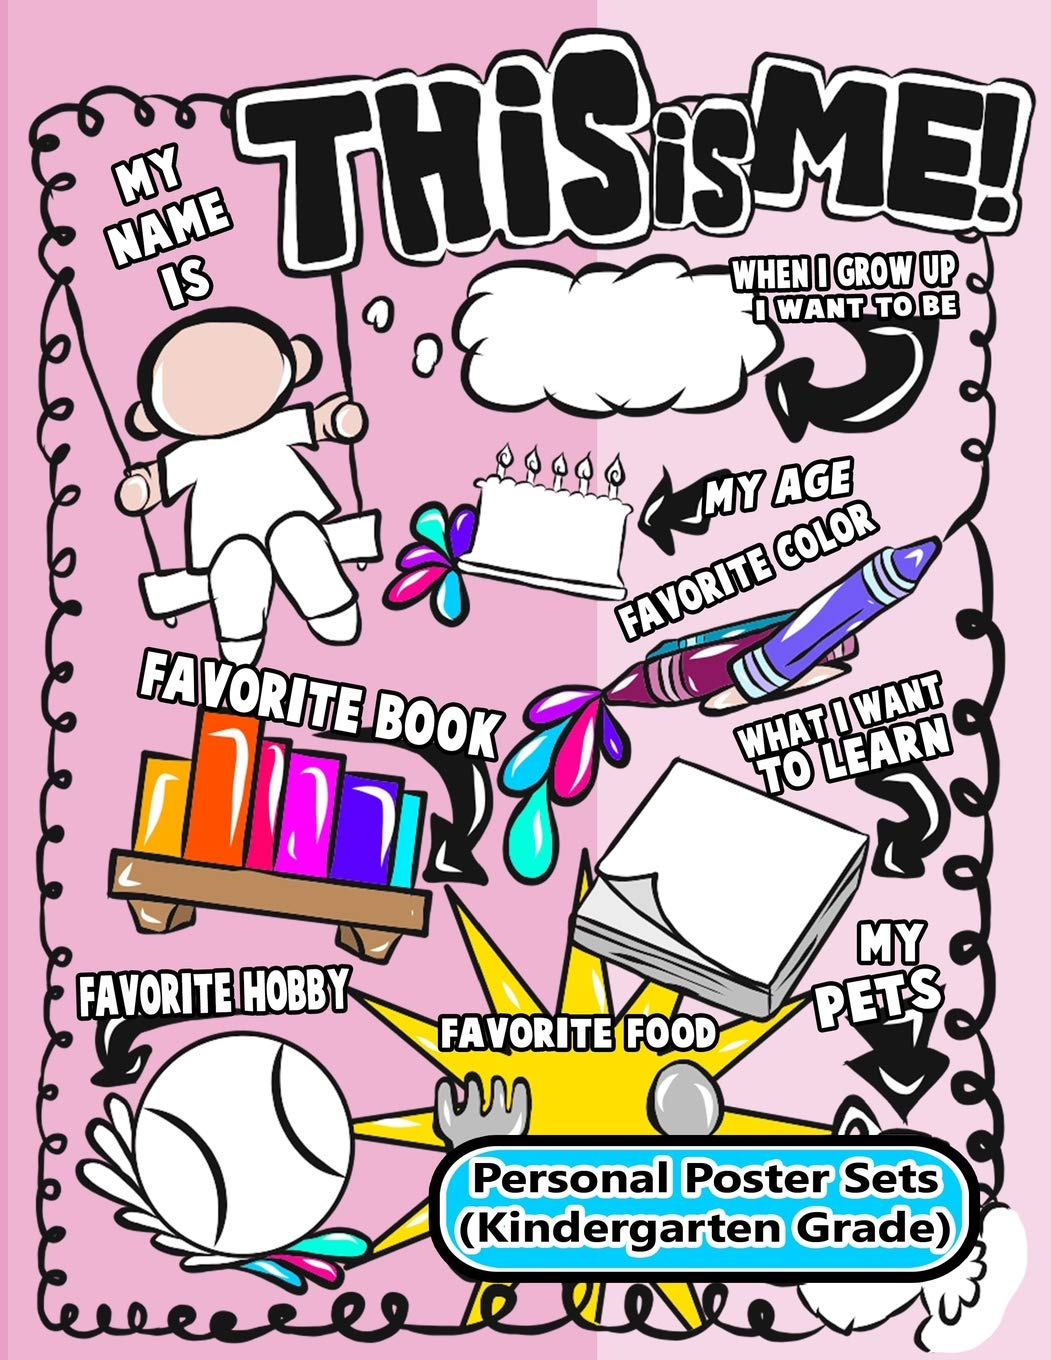 Buy Personal Poster Sets (Kindergarten): All About Me Fill.